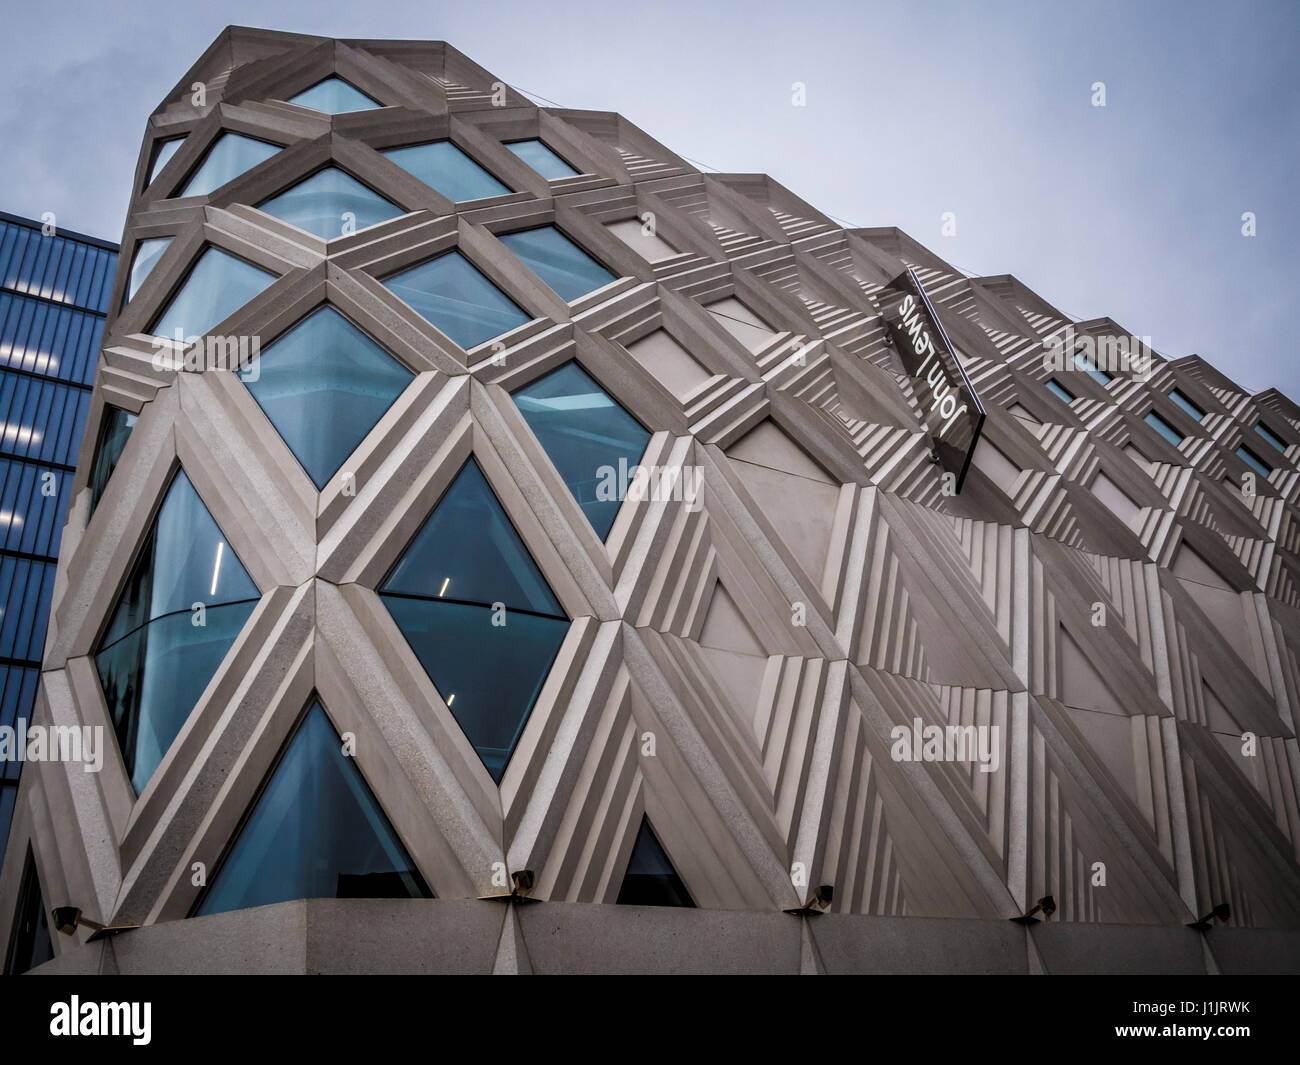 Exterior of John Lewis store at Victoria Gate, Leeds, UK. - Stock Image